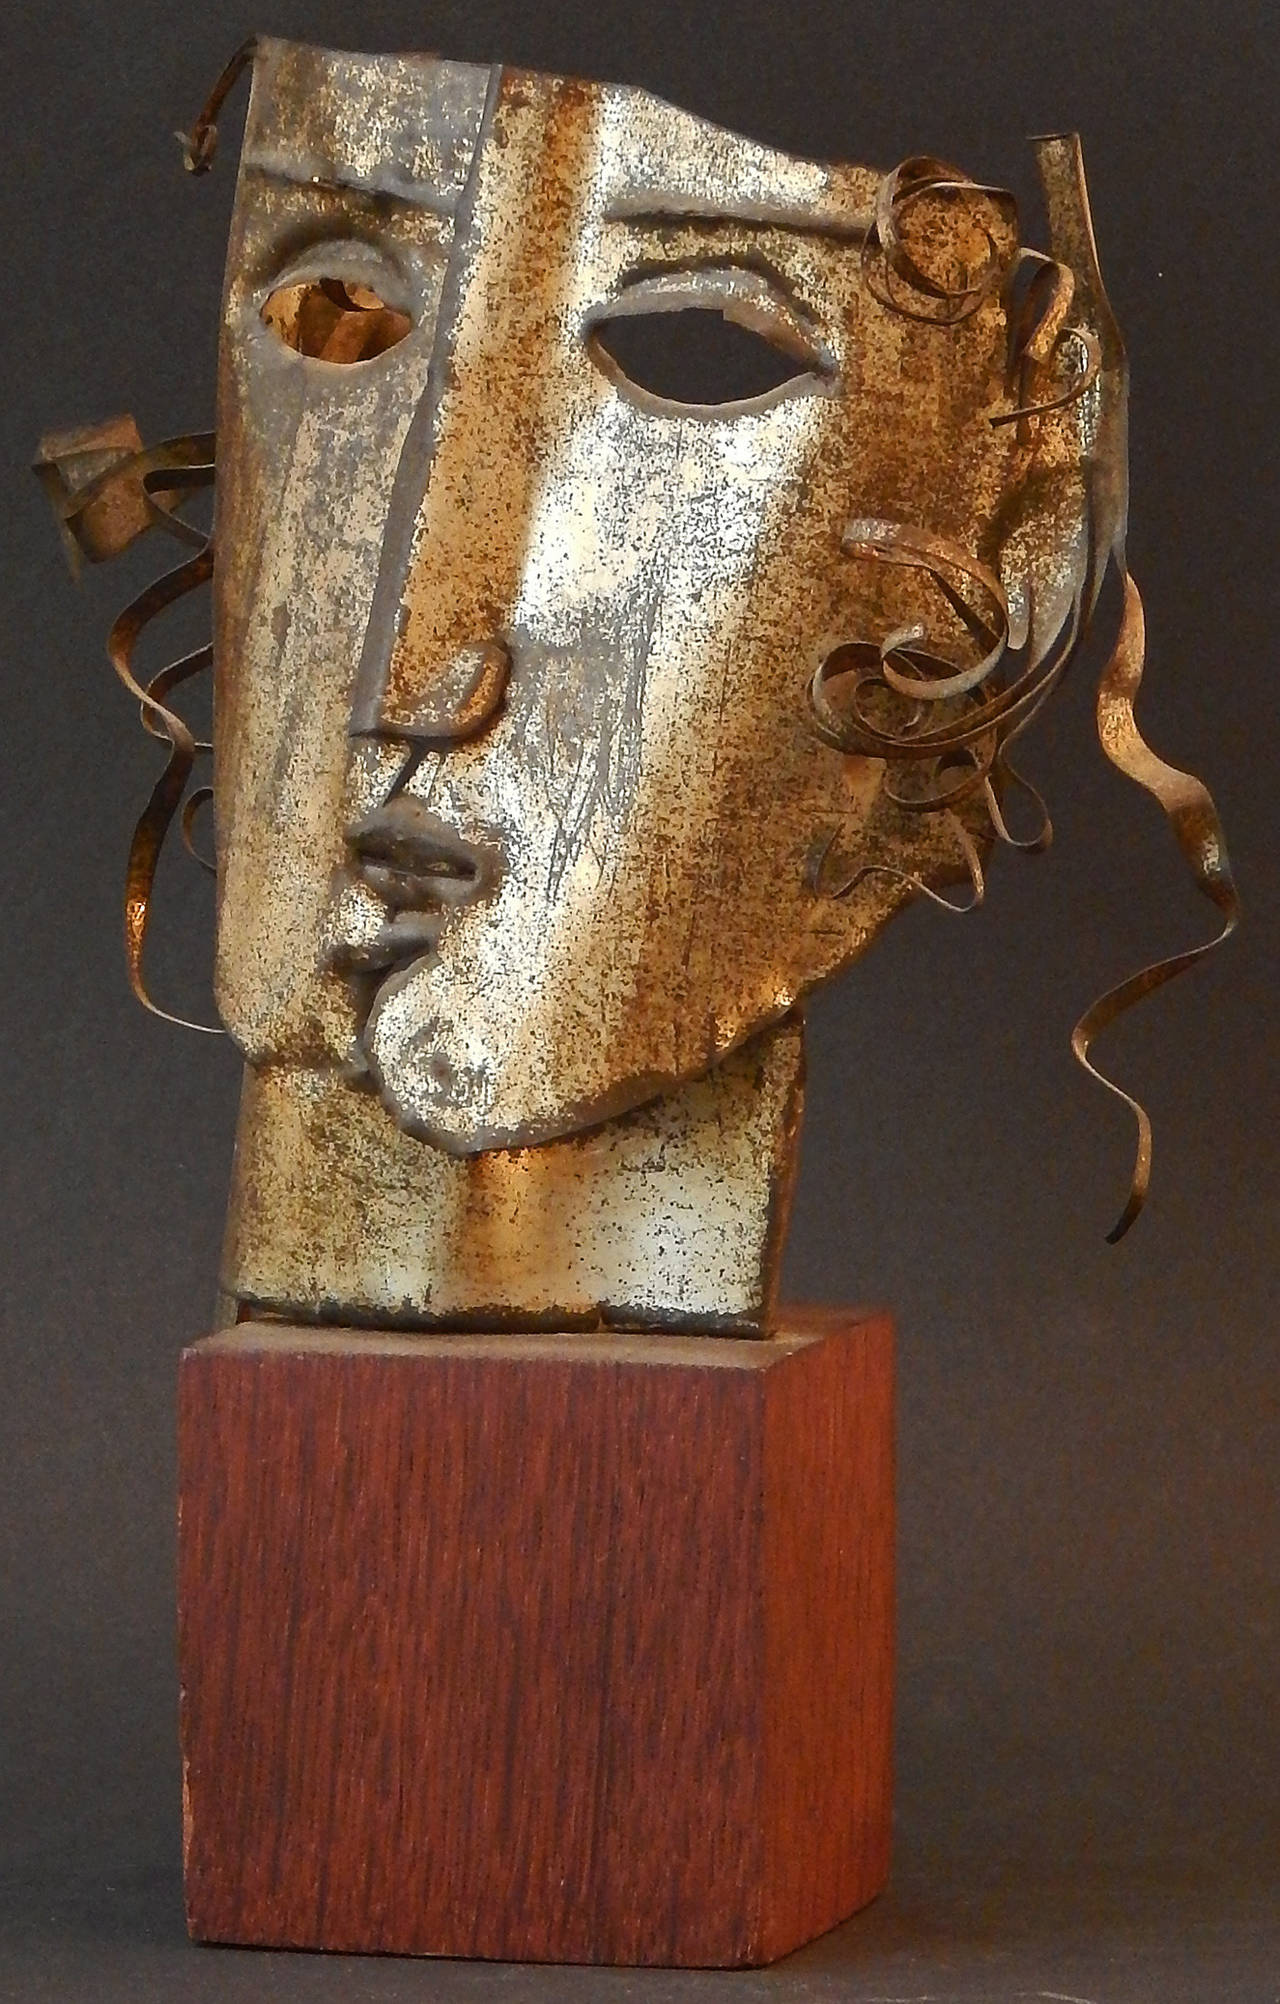 A very fine example of Cubist sculpture, executed in gilt tin cut and shaped into human form, this piece was sculpted by Edmund Kinzinger, a German-born artist who settled in America in the 1920s and taught in Minnesota and Texas over a long career.